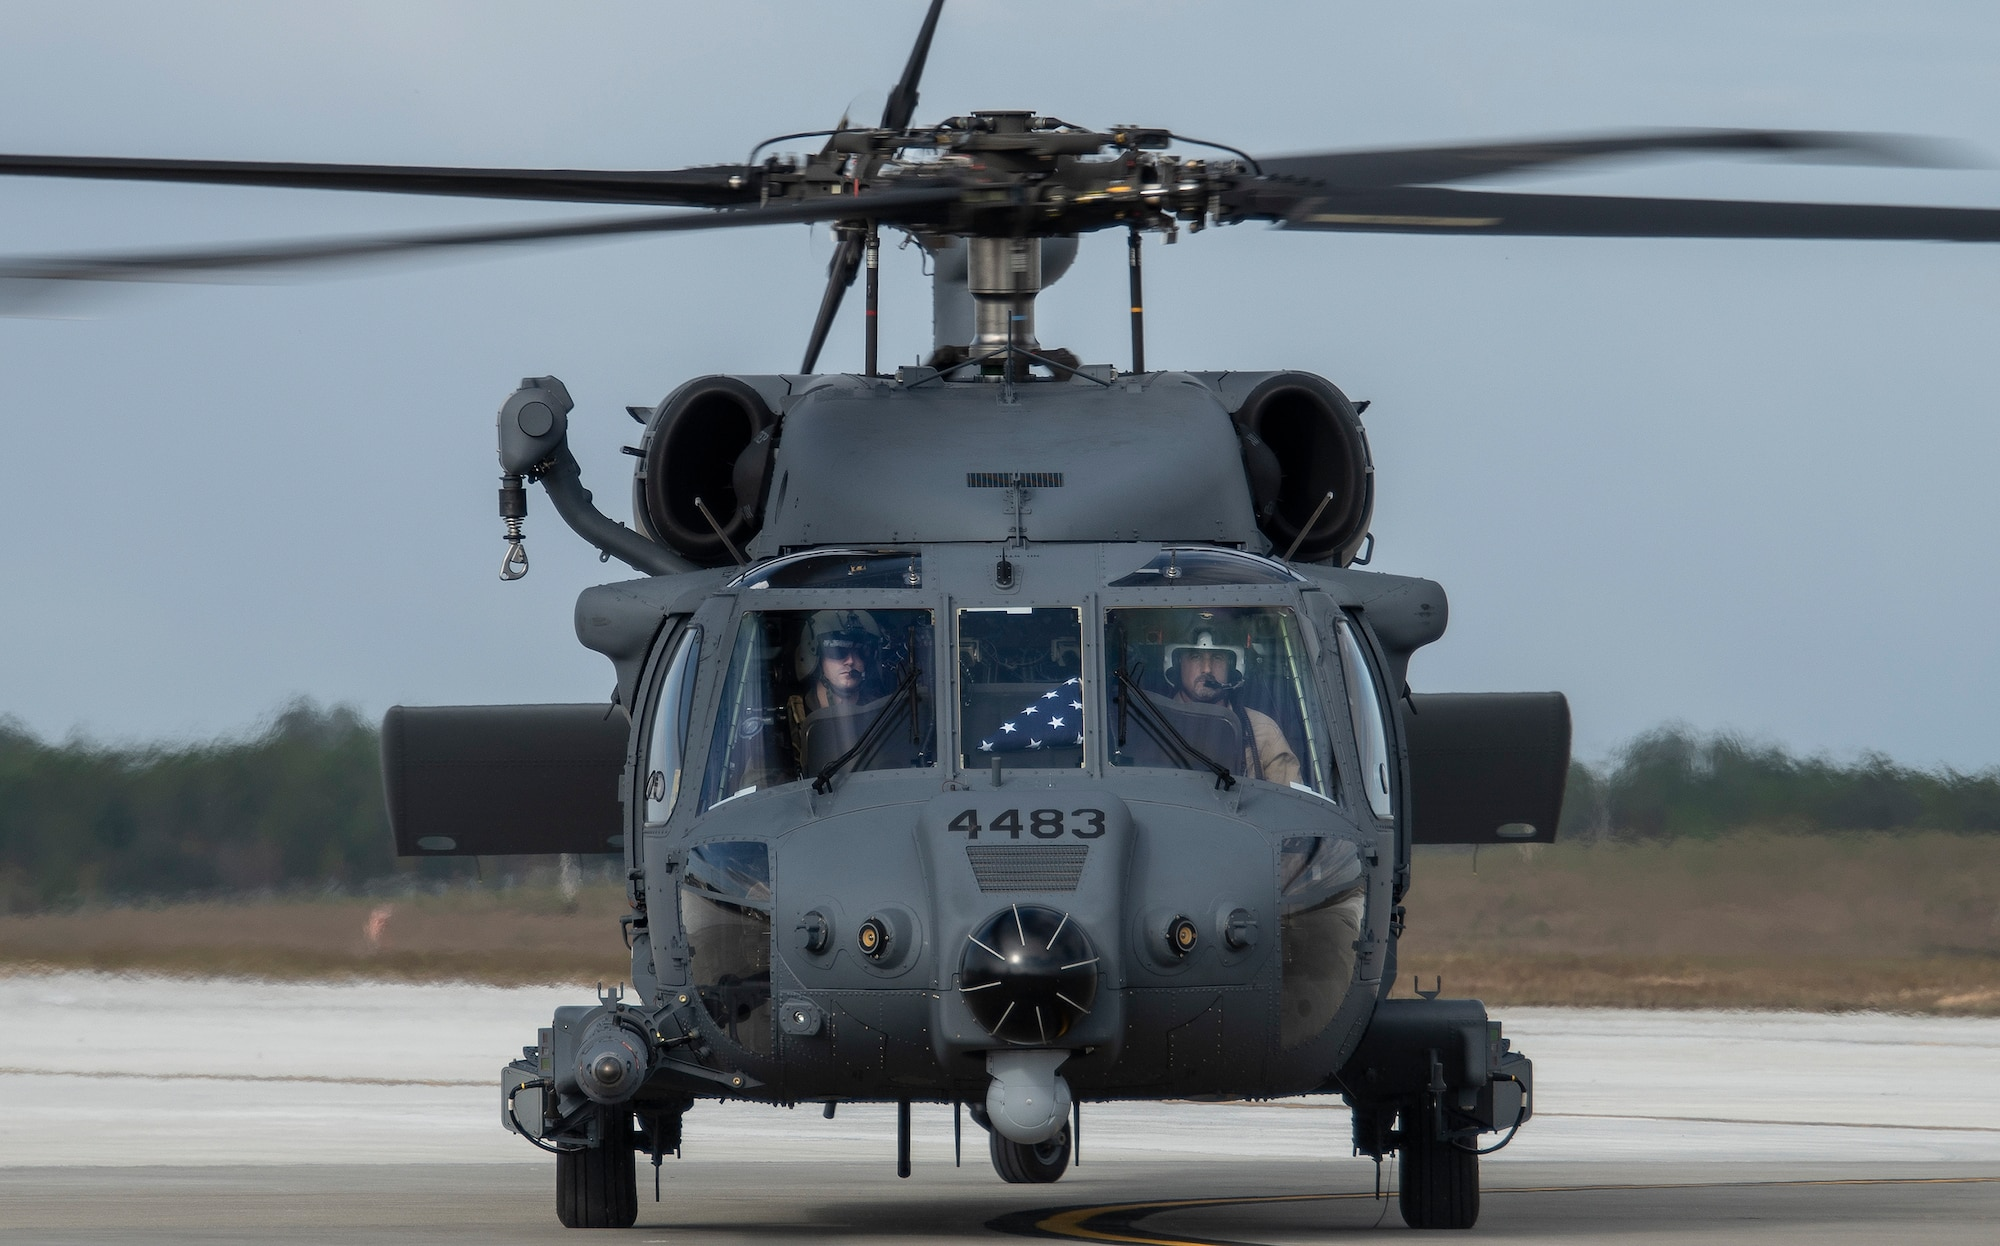 A new HH-60W combat rescue helicopter taxis to its new home Nov. 6, 2020 at Eglin Air Force Base, Fla. The aircraft was delivered to the 413th Flight Test Squadron located at Duke Field. The combat rescue helicopter was the first of two new test aircraft for the developmental test squadron.